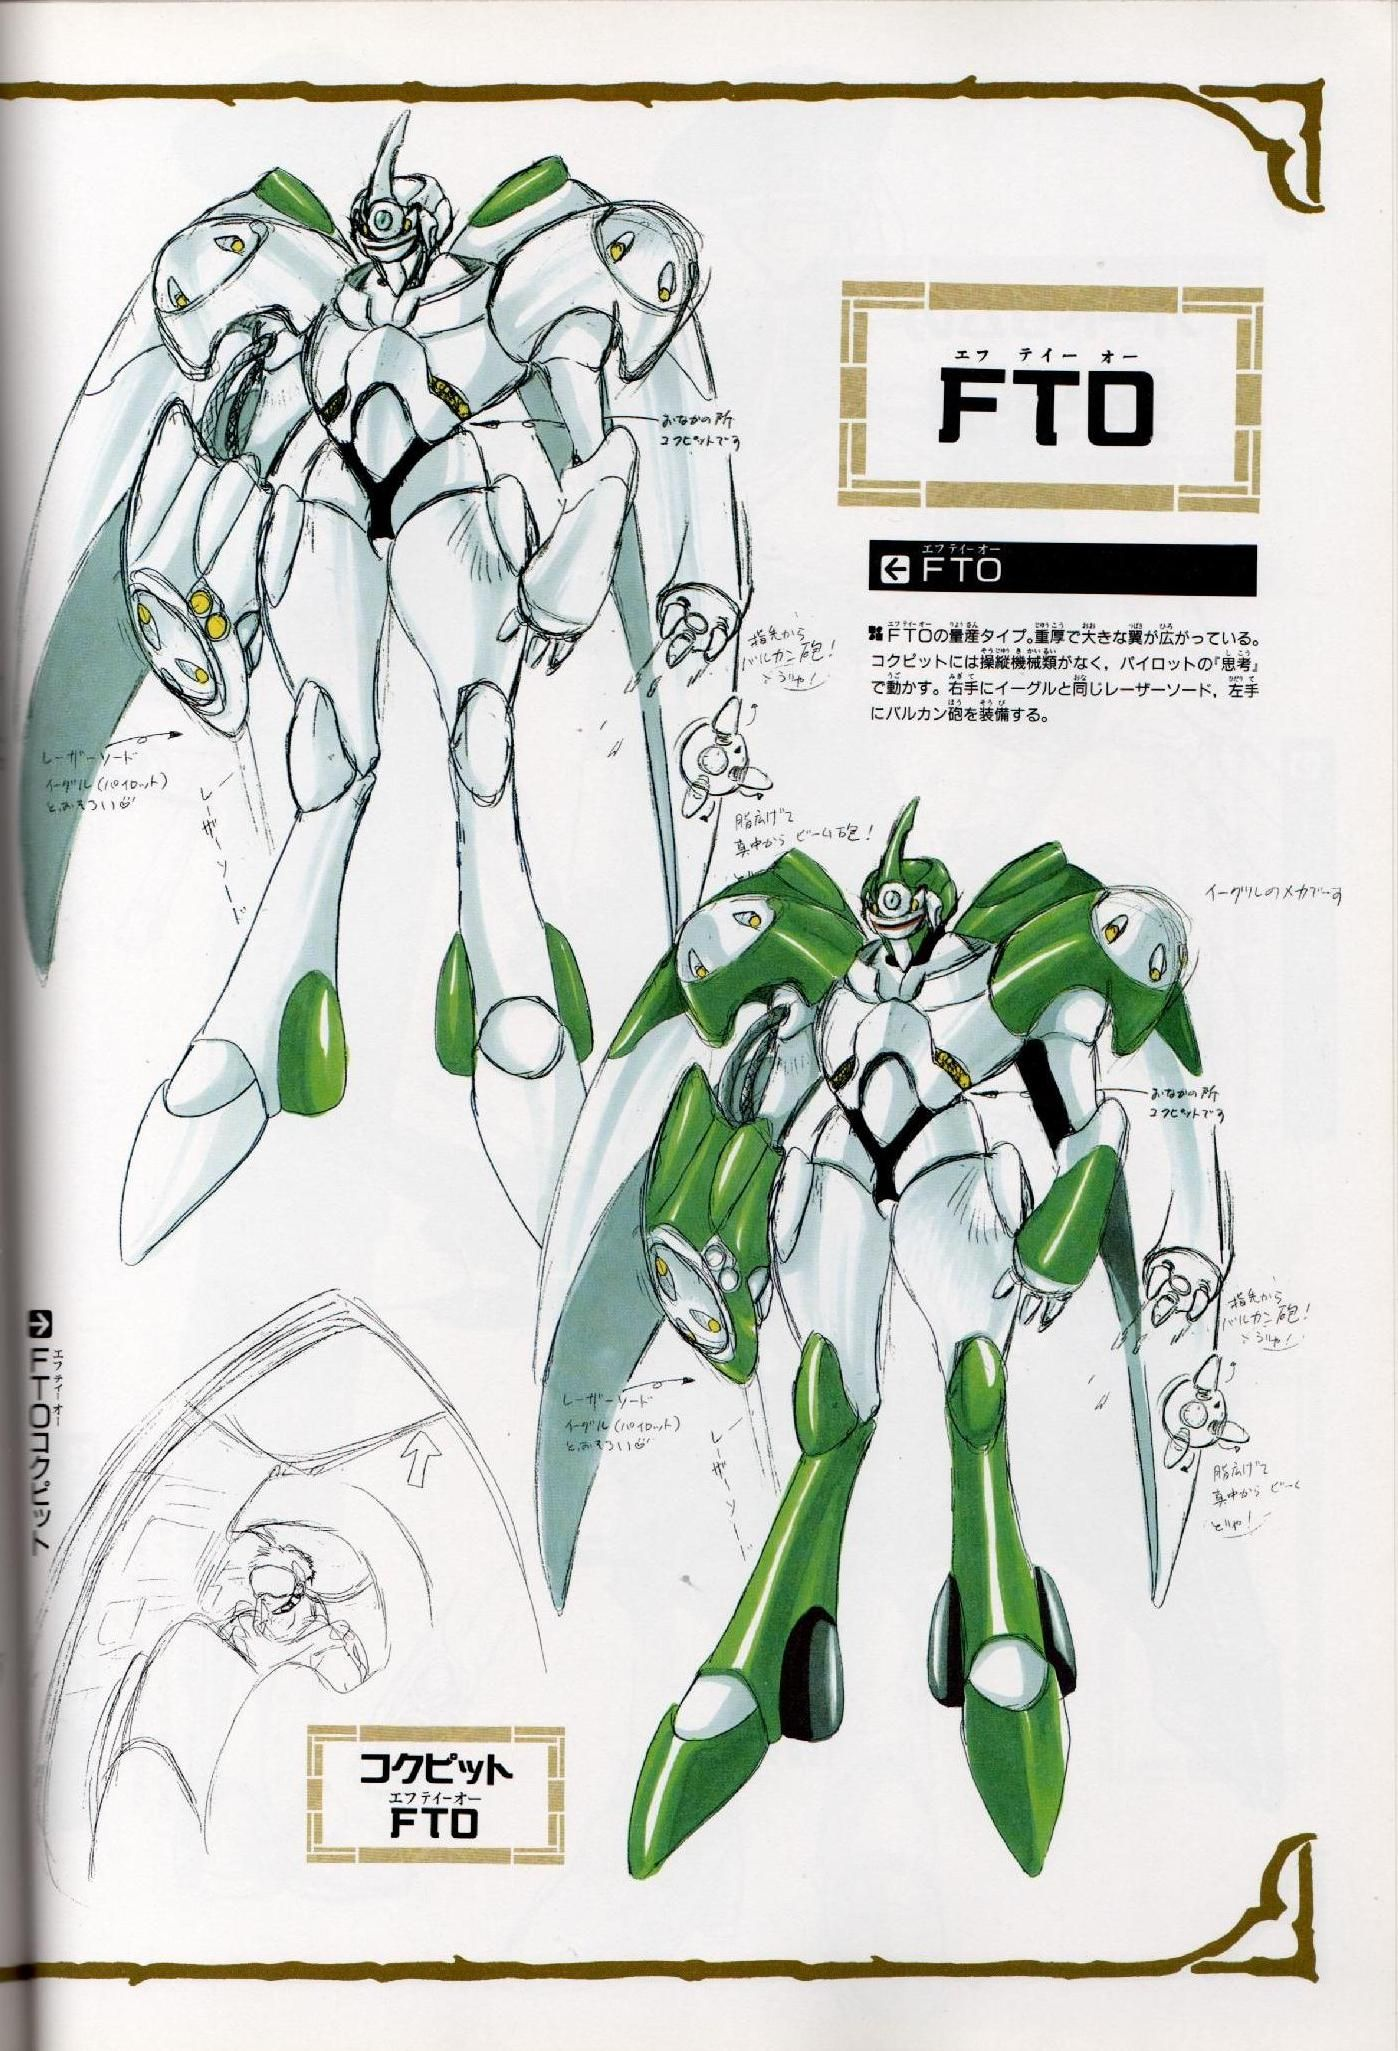 CLAMP, TMS Entertainment, Magic Knight Rayearth, Magic Knight Rayearth: Materials Collection, FTO